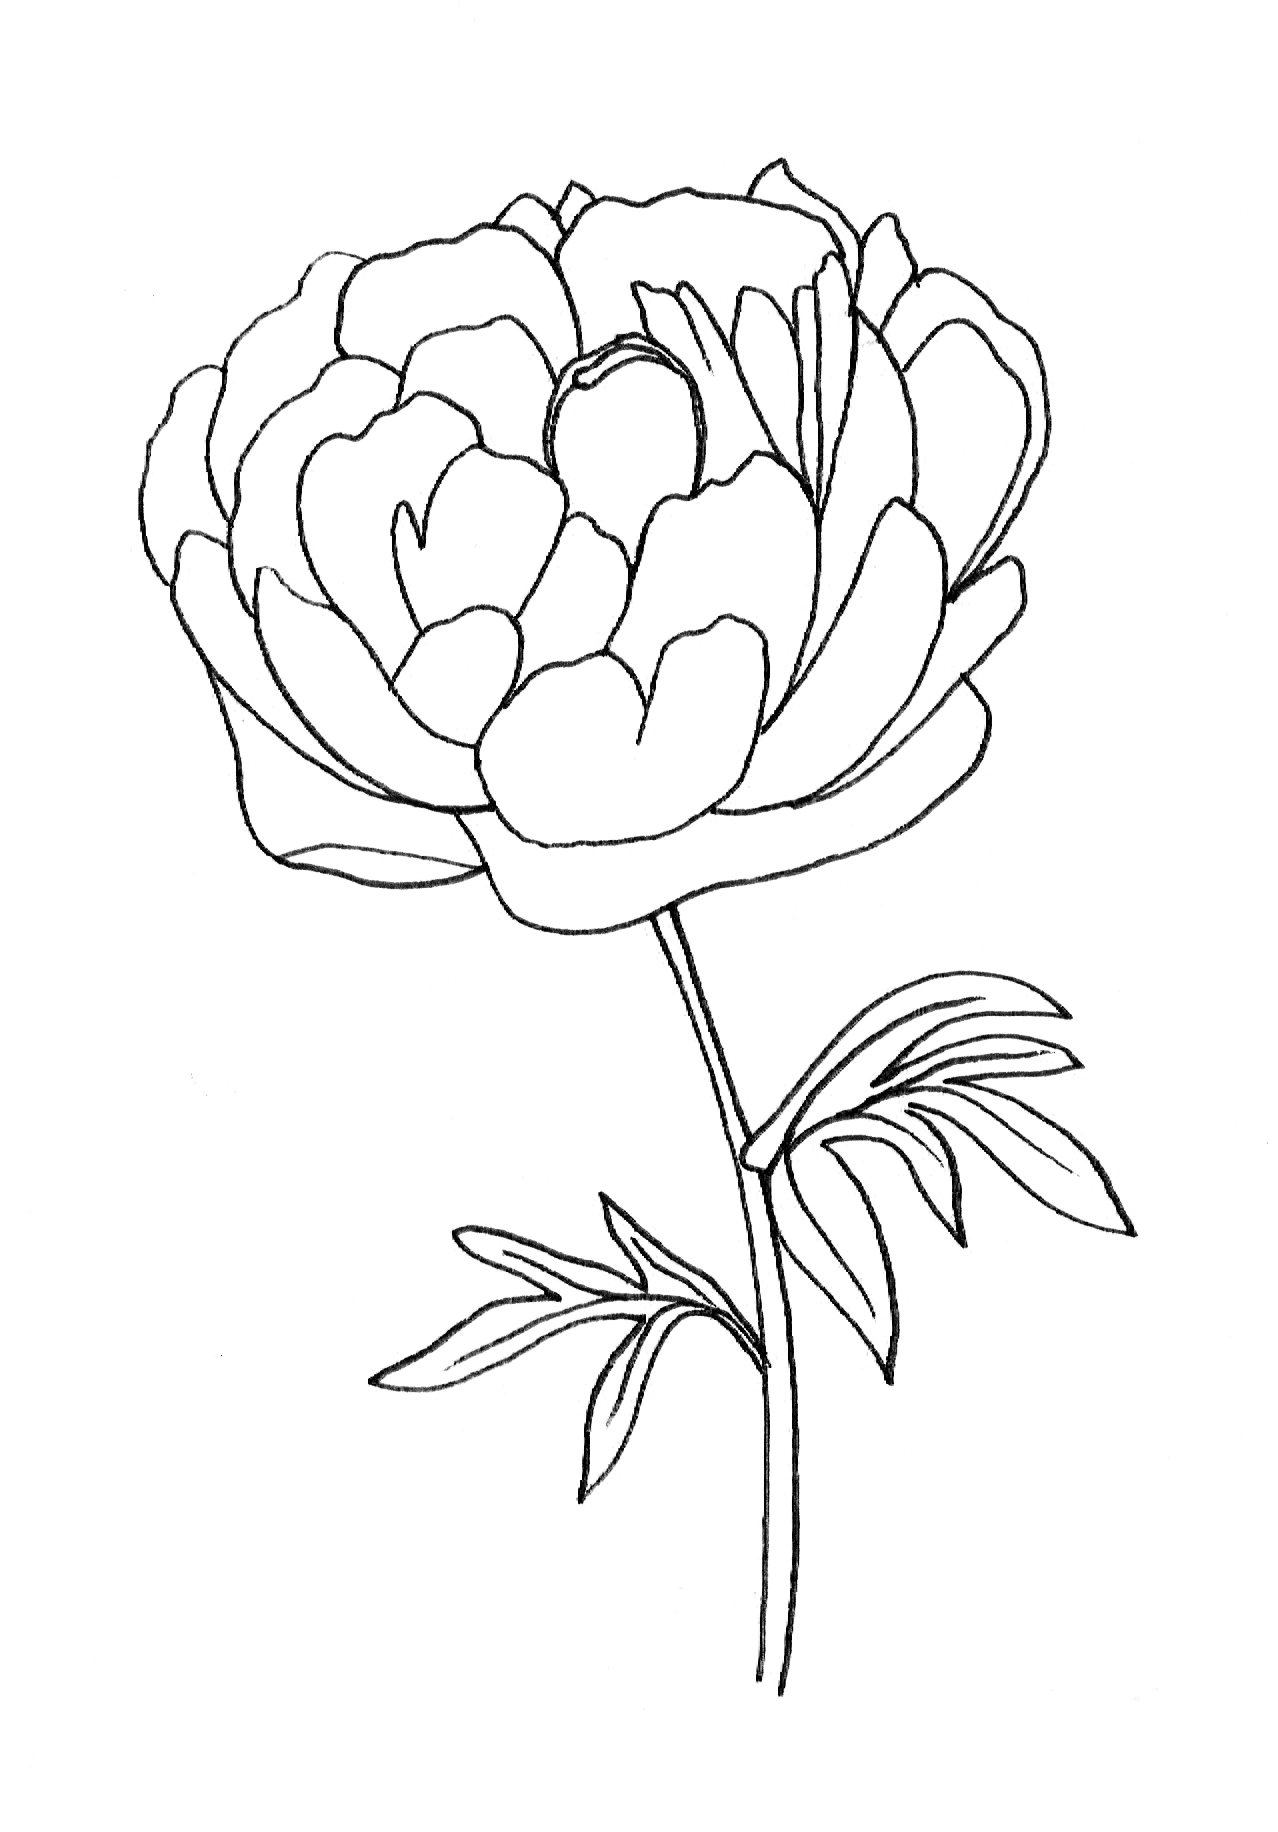 Felicity & Ink-Shading Technique on Florals-Peony Outline.jpg